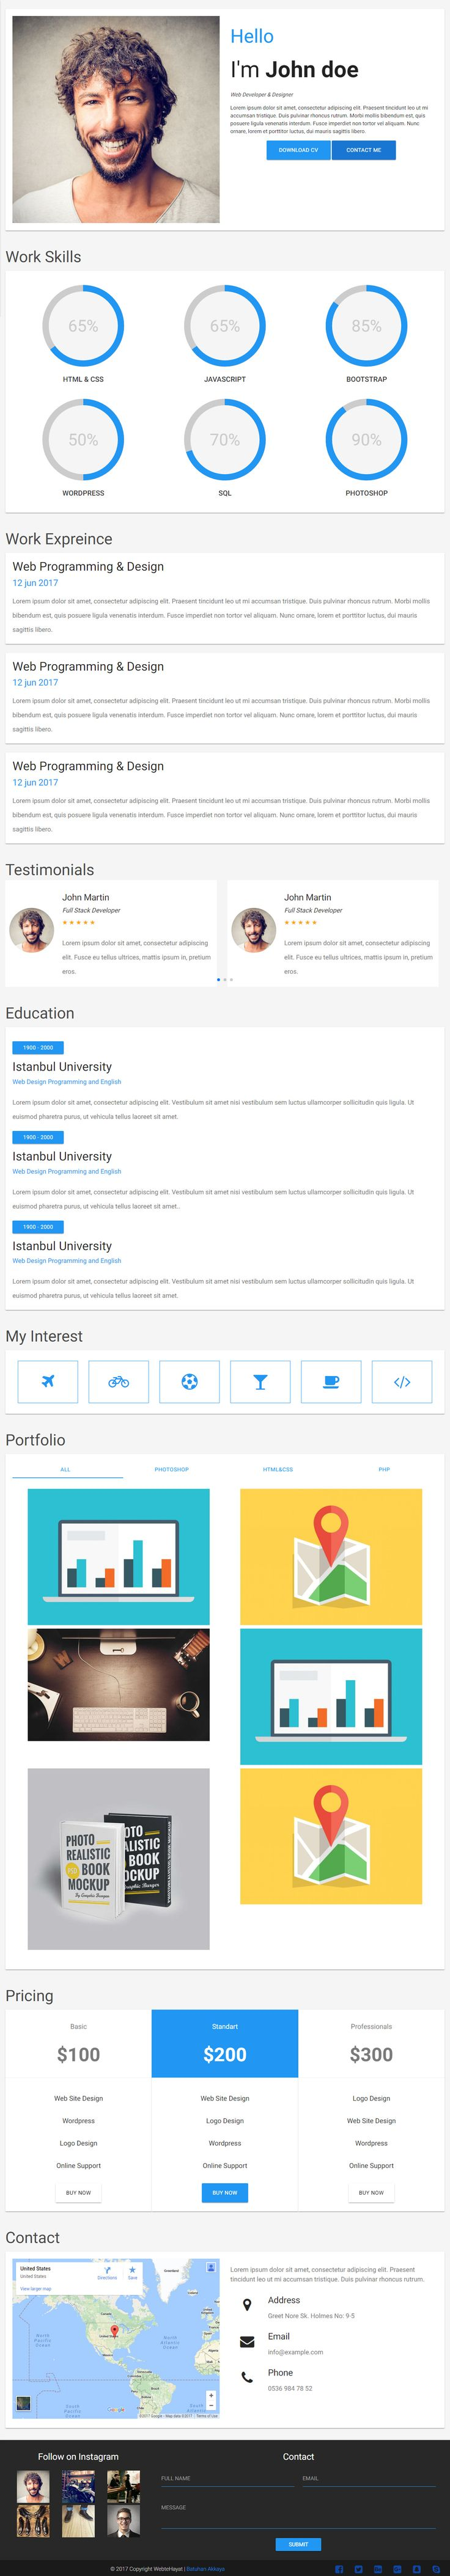 Material CV is Premium full Responsive Retina HTML5 Template. Material Design. One Page. #MaterializeCSS. If you like this #CVTemplate visit our handpicked list of best #Resume and #CV Website Templates at: http://www.responsivemiracle.com/best-resume-and-cv-website-template/